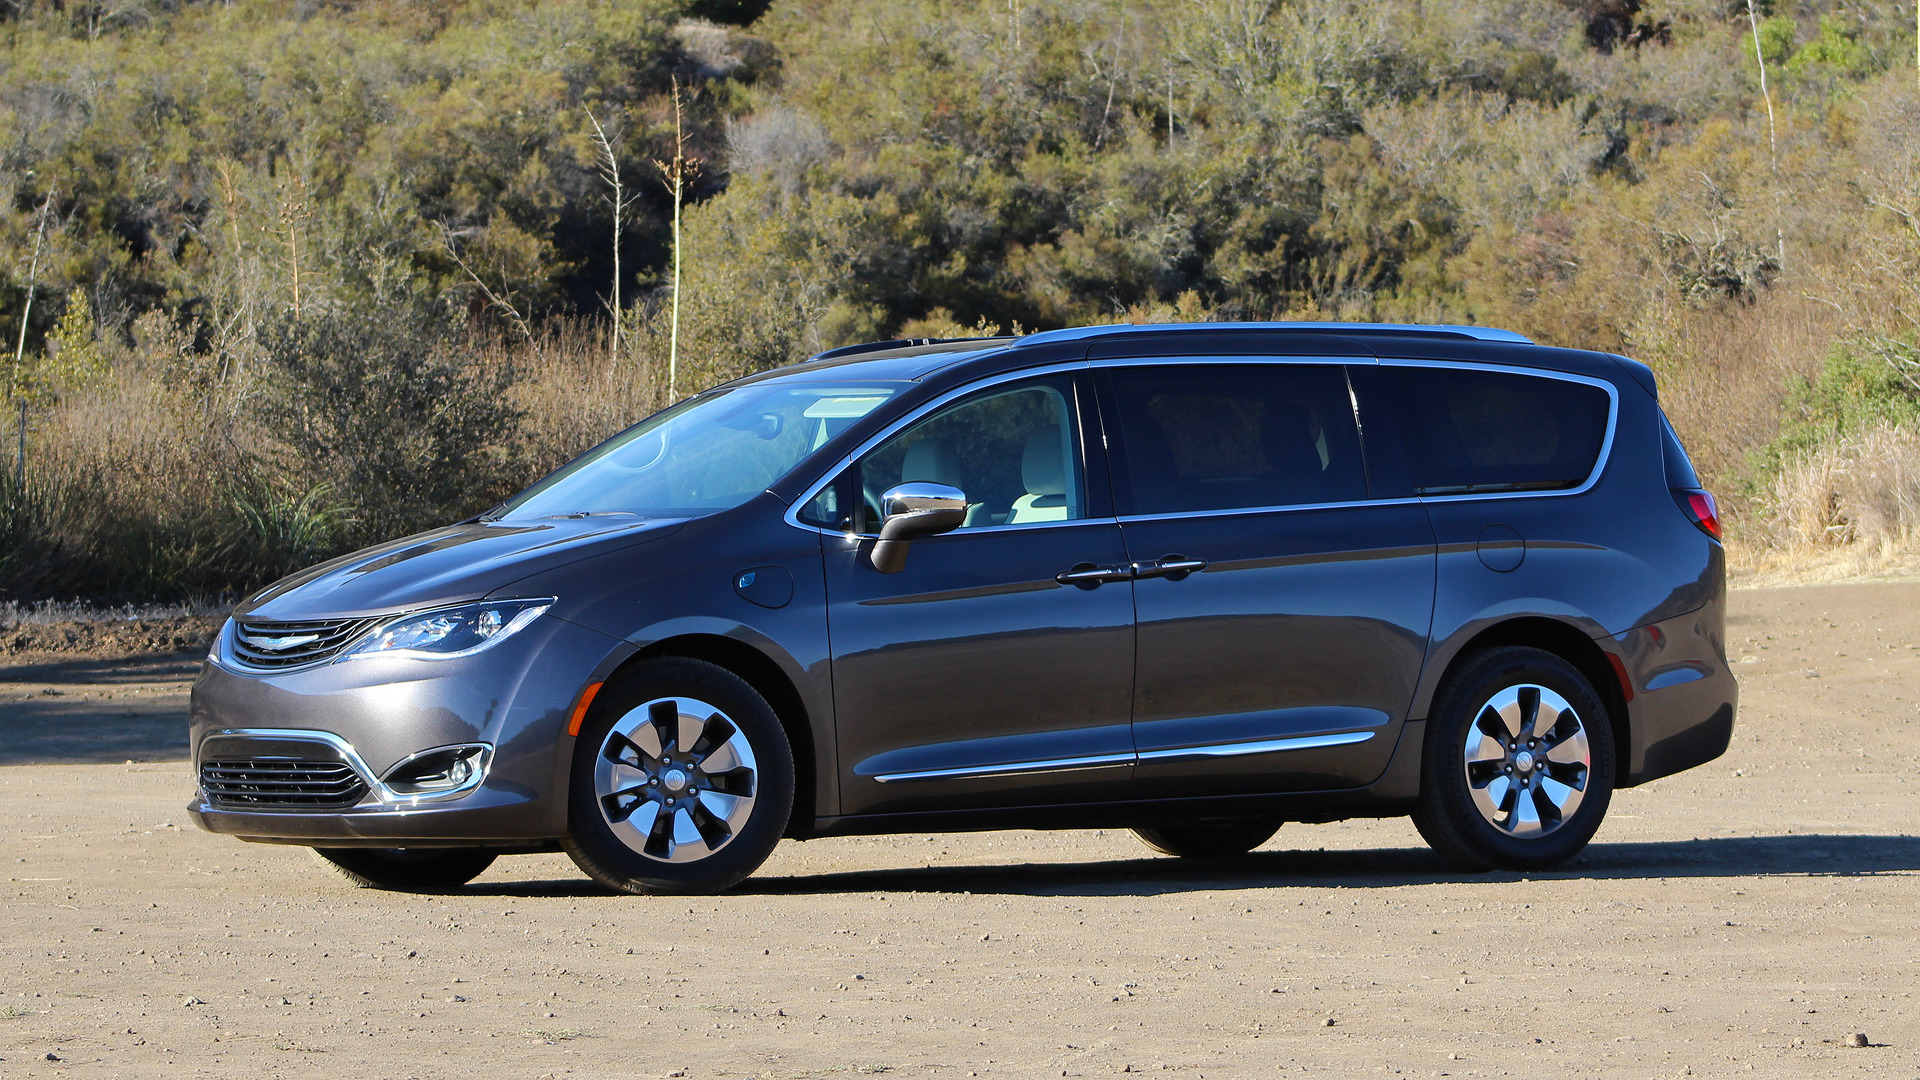 2017 Chrysler Pacifica Hybrid First Drive: Electrify the whole famn damily